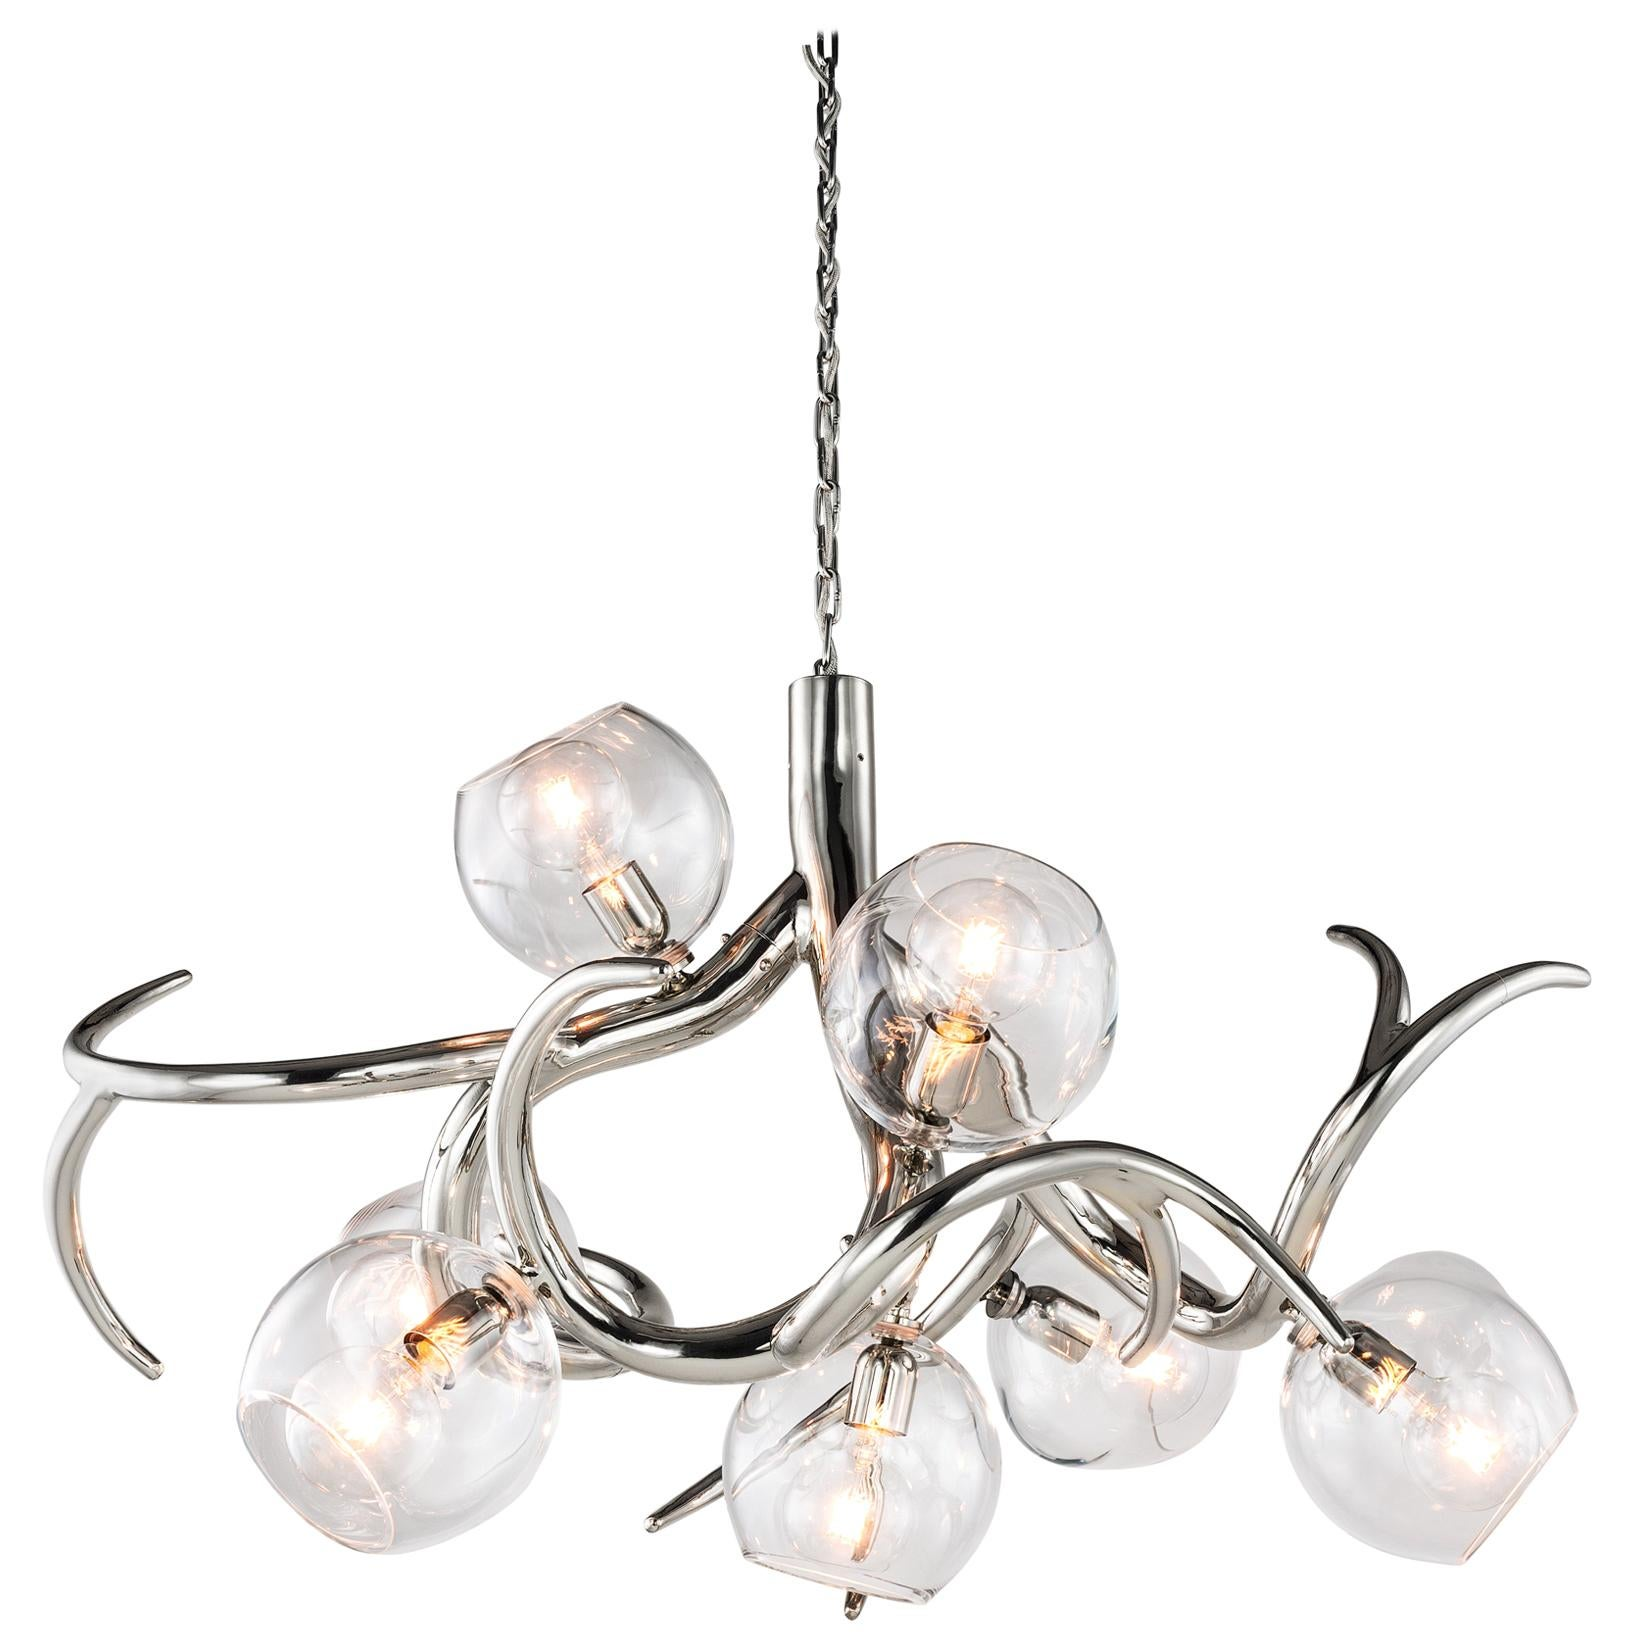 Modern Chandelier with Colored Glass in a Nickel Finish, Ersa Collection